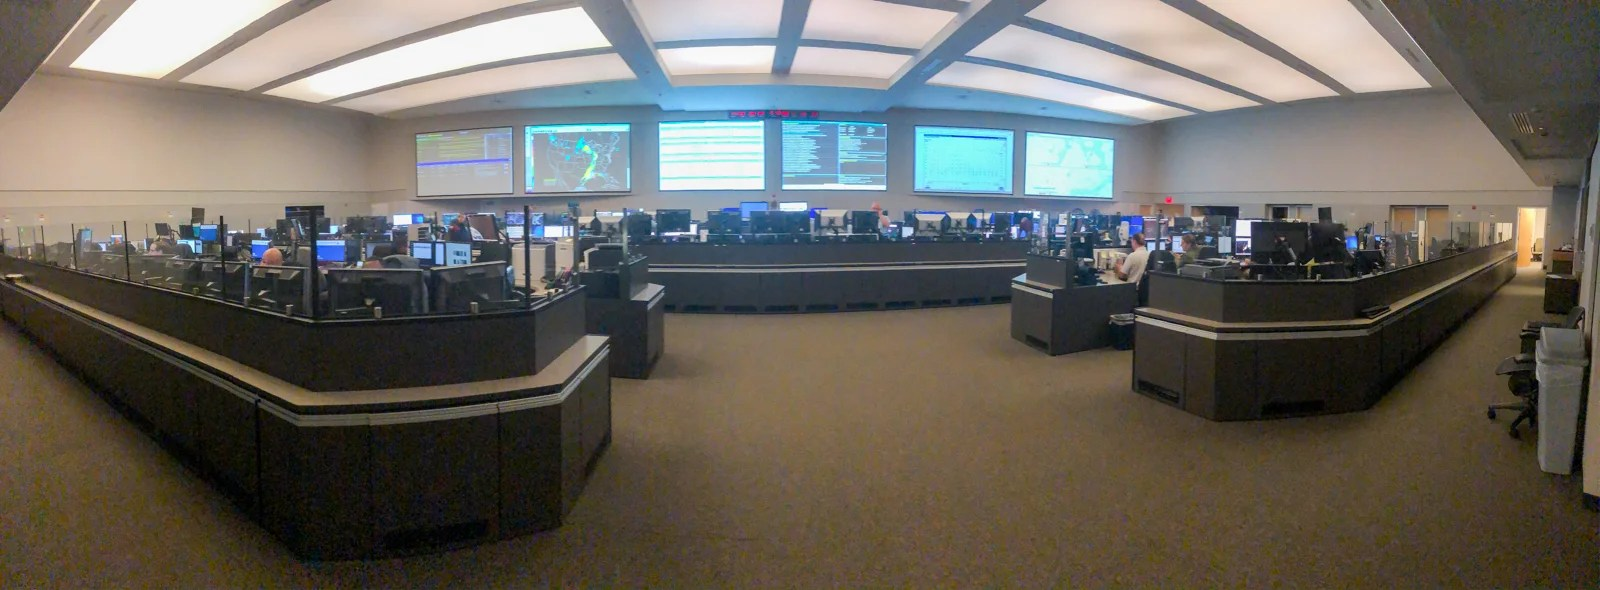 Inside the room where the FAA controls US airspace